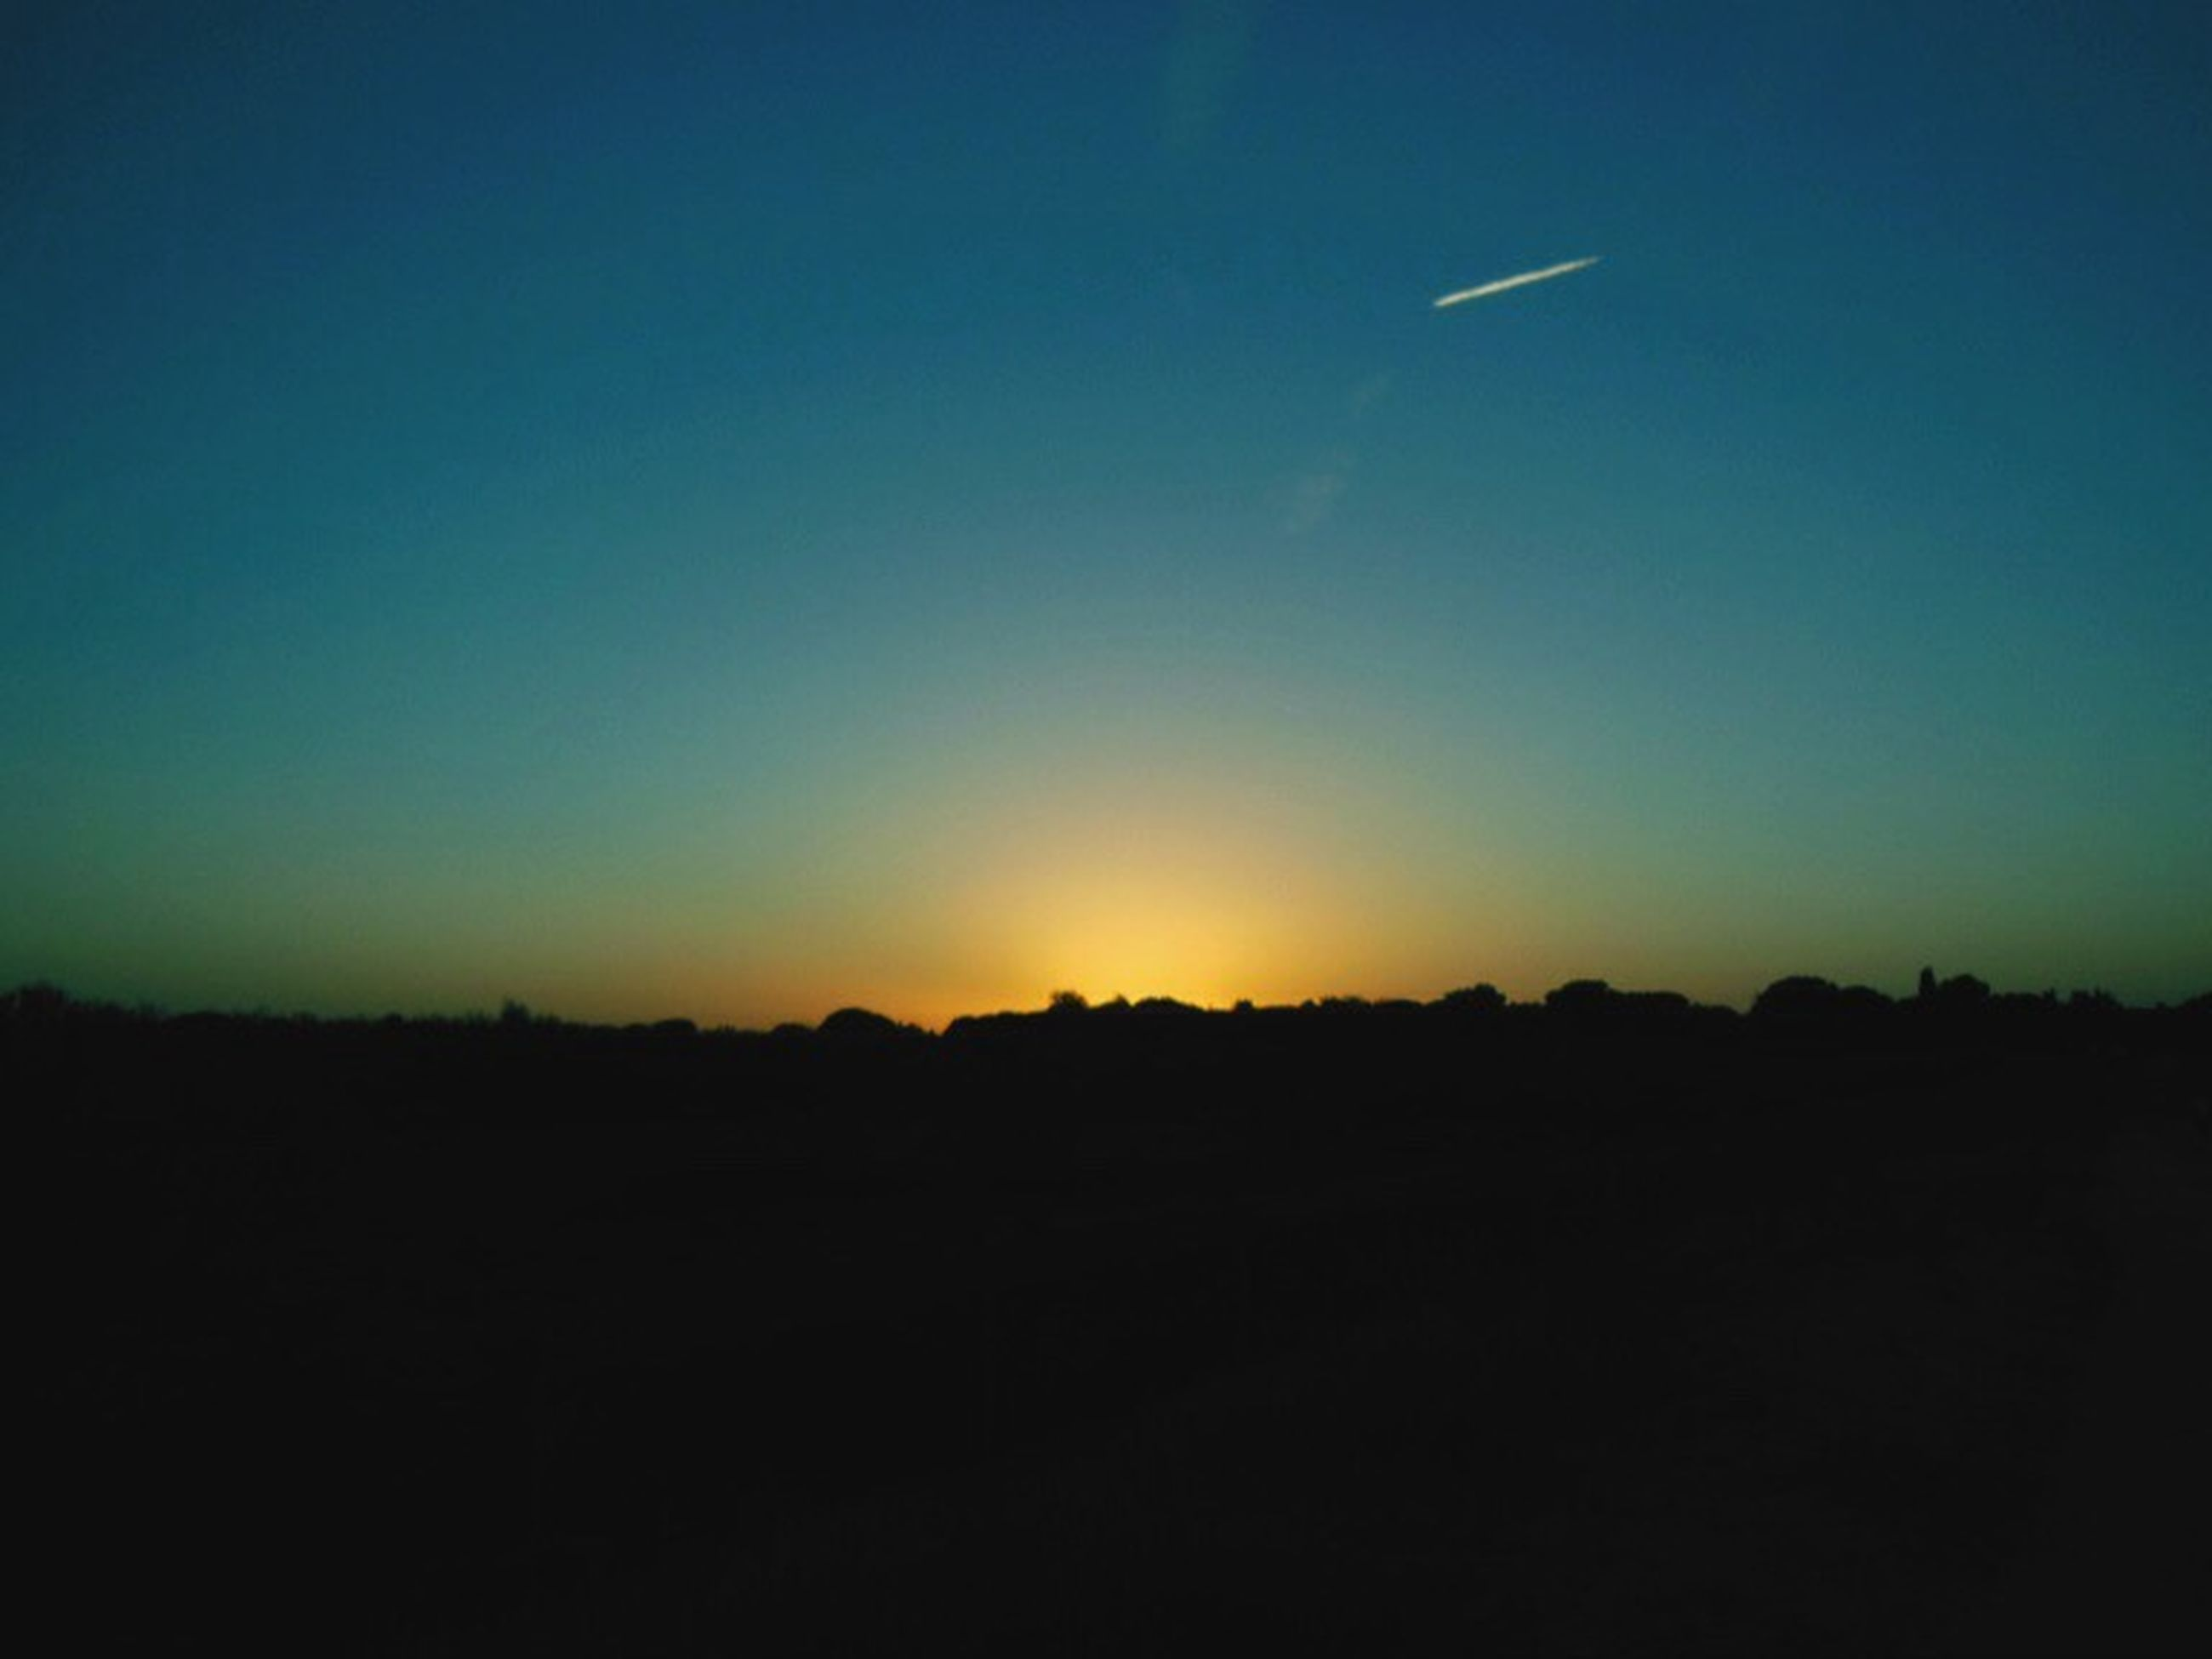 silhouette, copy space, sunset, clear sky, scenics, tranquil scene, tranquility, beauty in nature, blue, landscape, nature, idyllic, dusk, orange color, dark, outline, outdoors, sky, no people, horizon over land